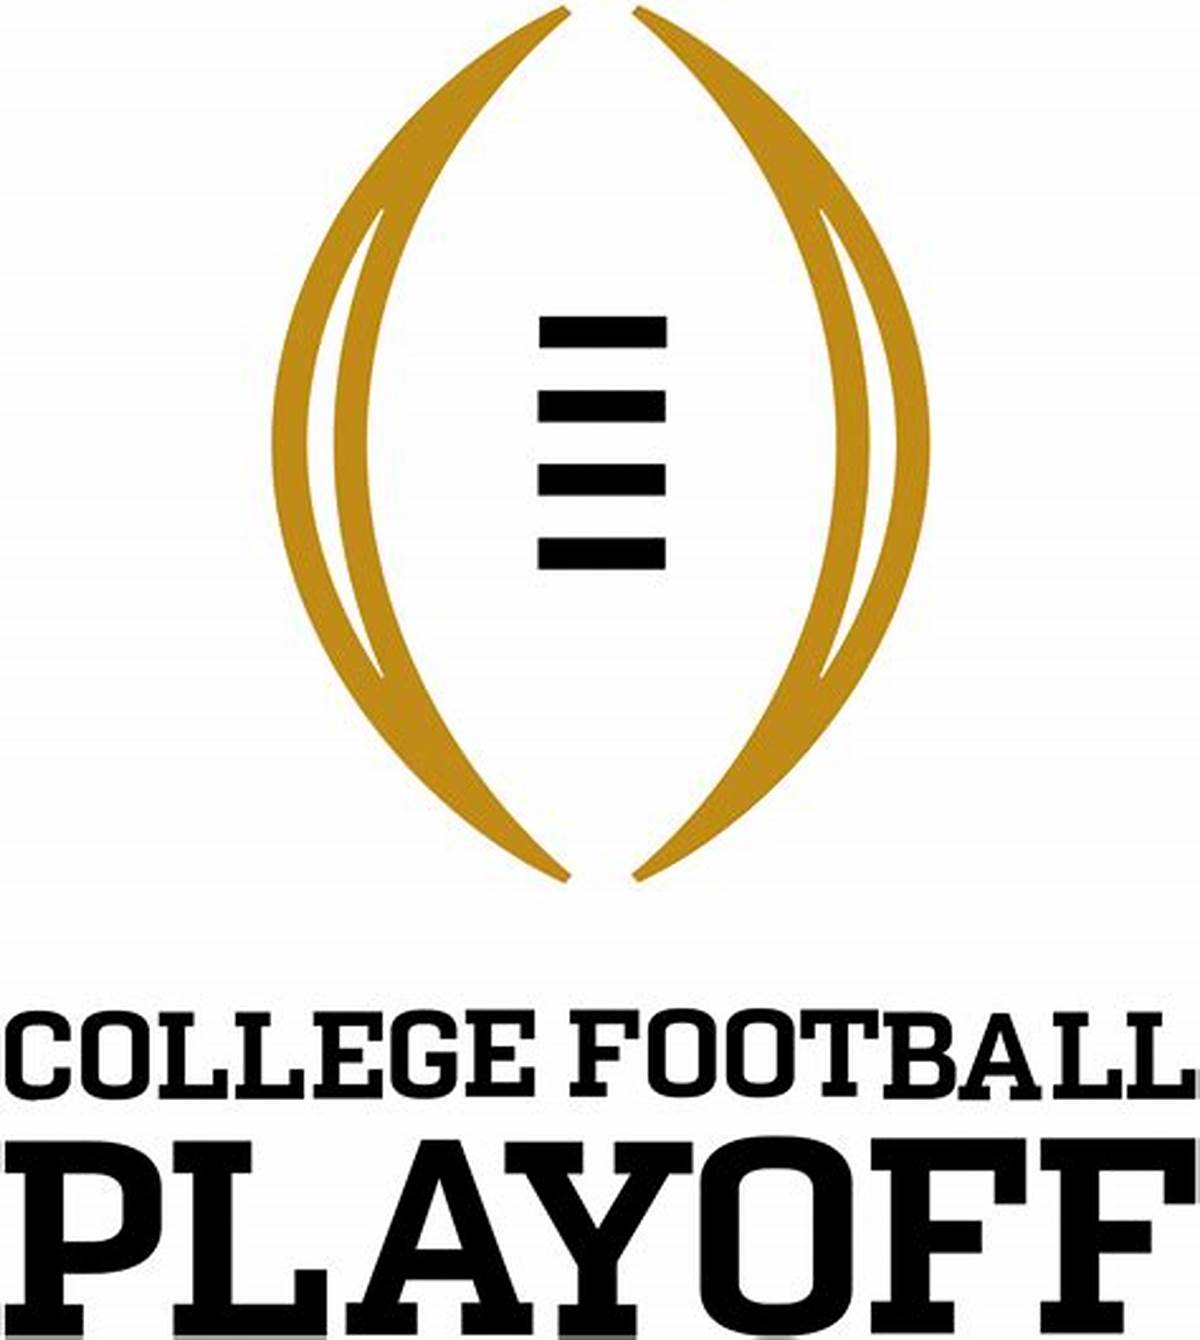 New debate has sparked about re-sizing the College Football Playoffs.